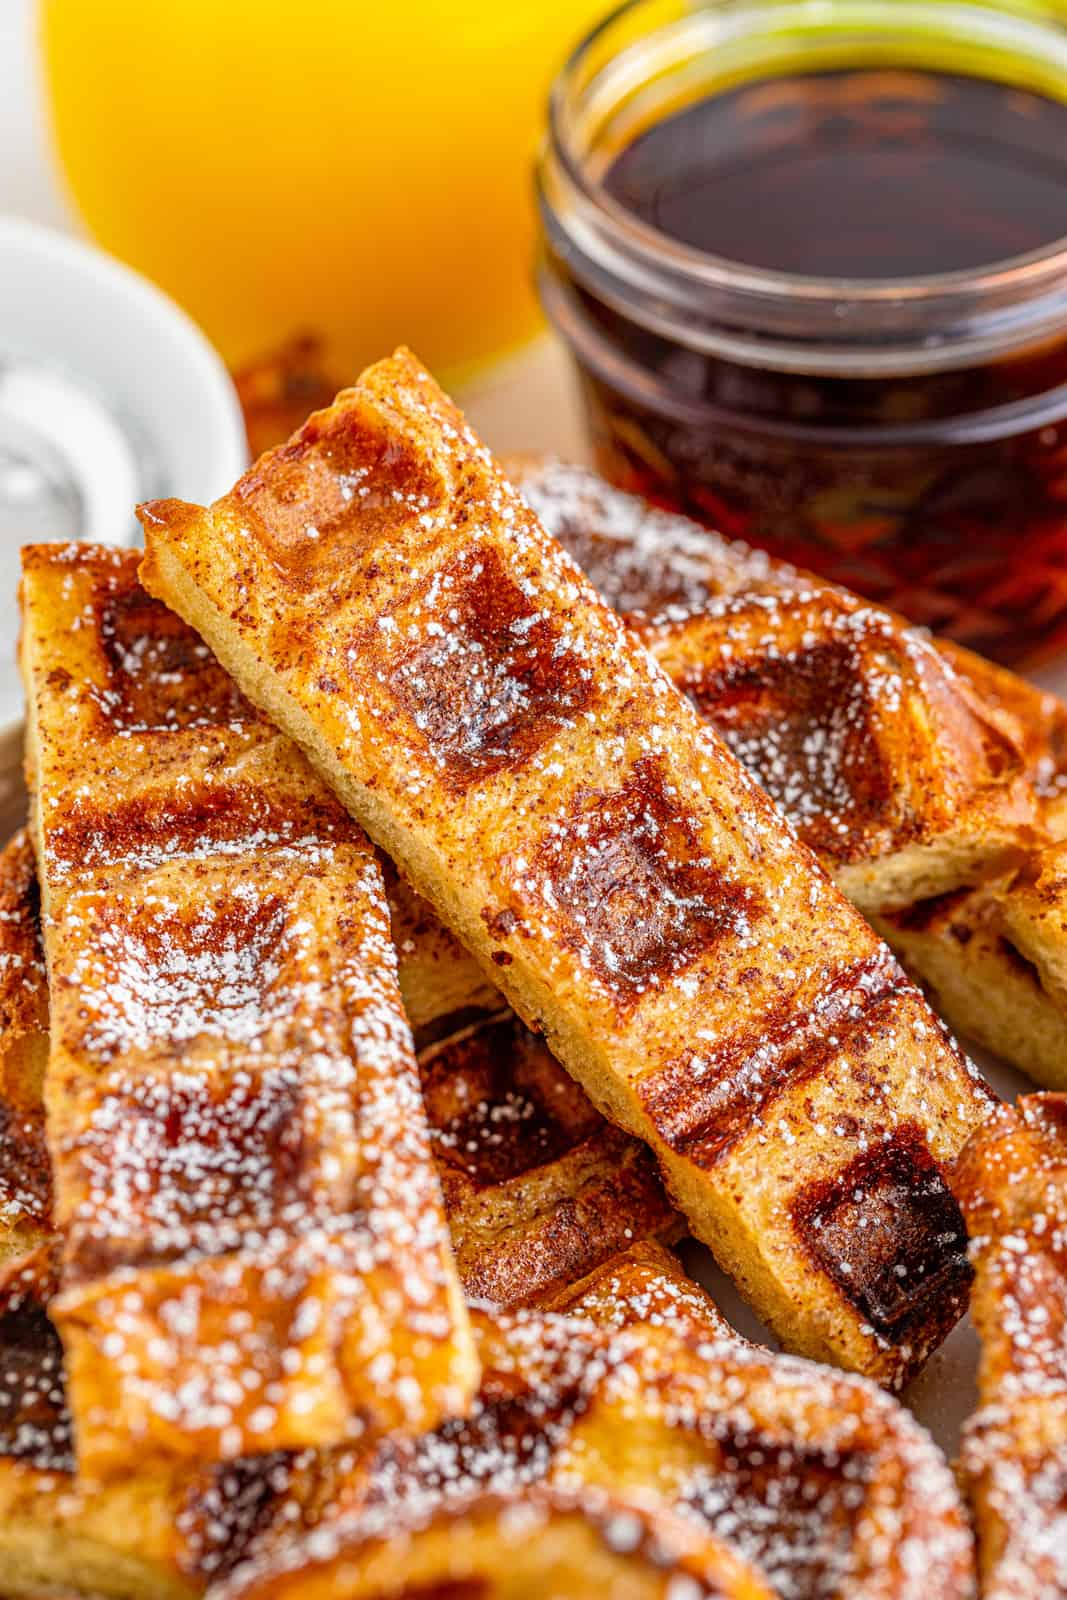 Close up on one Waffle Stick next to syrup.